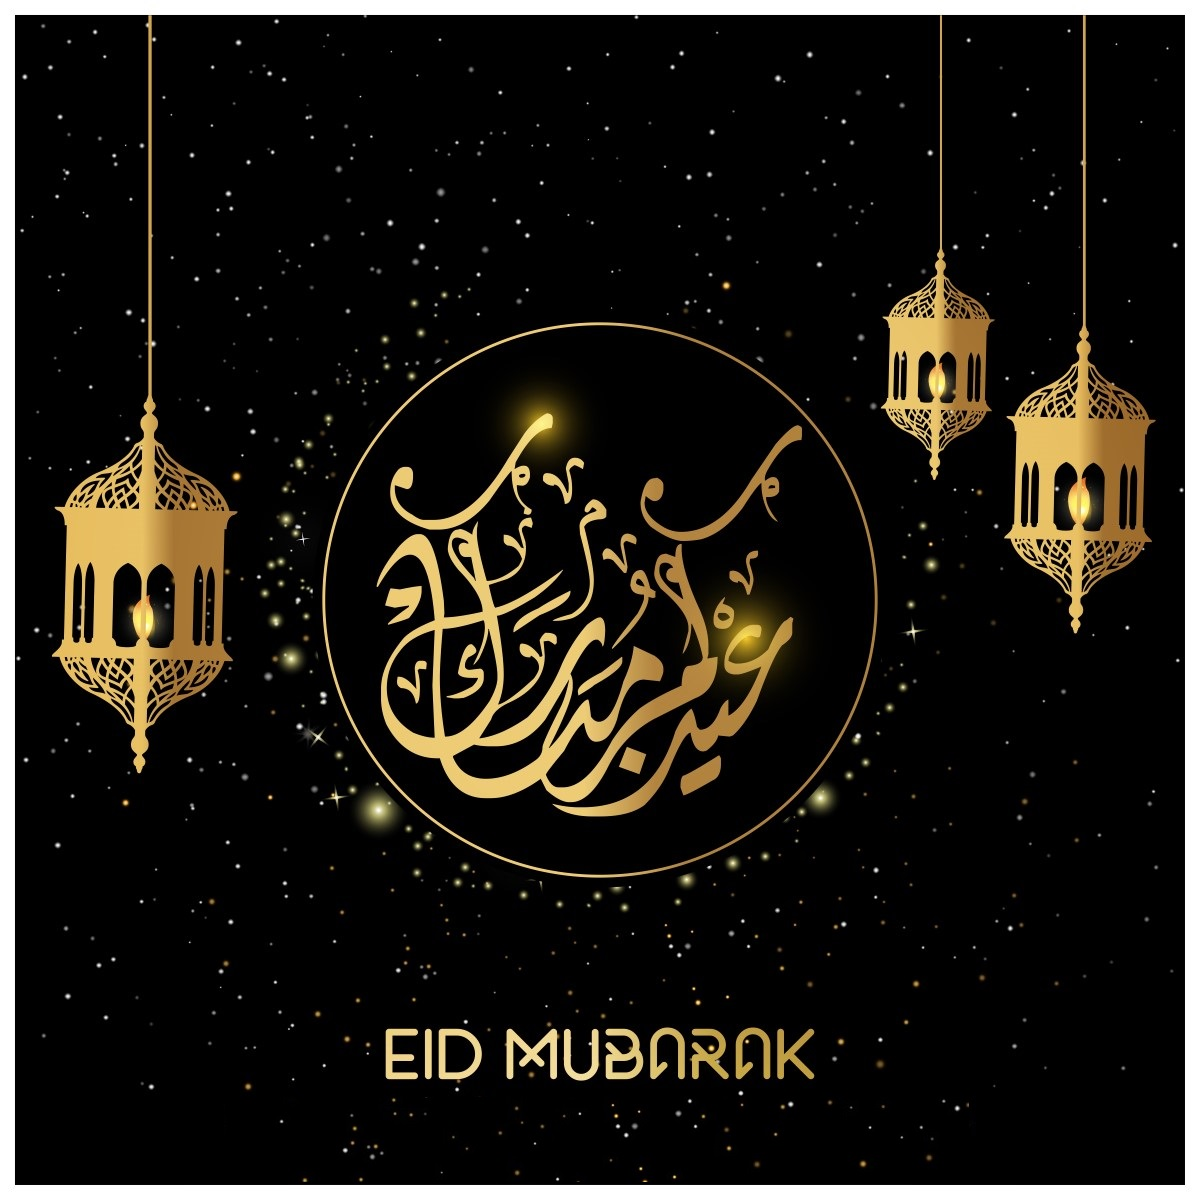 Eid Mubarak Images 2019, HD Wallpapers, Pictures Free Download